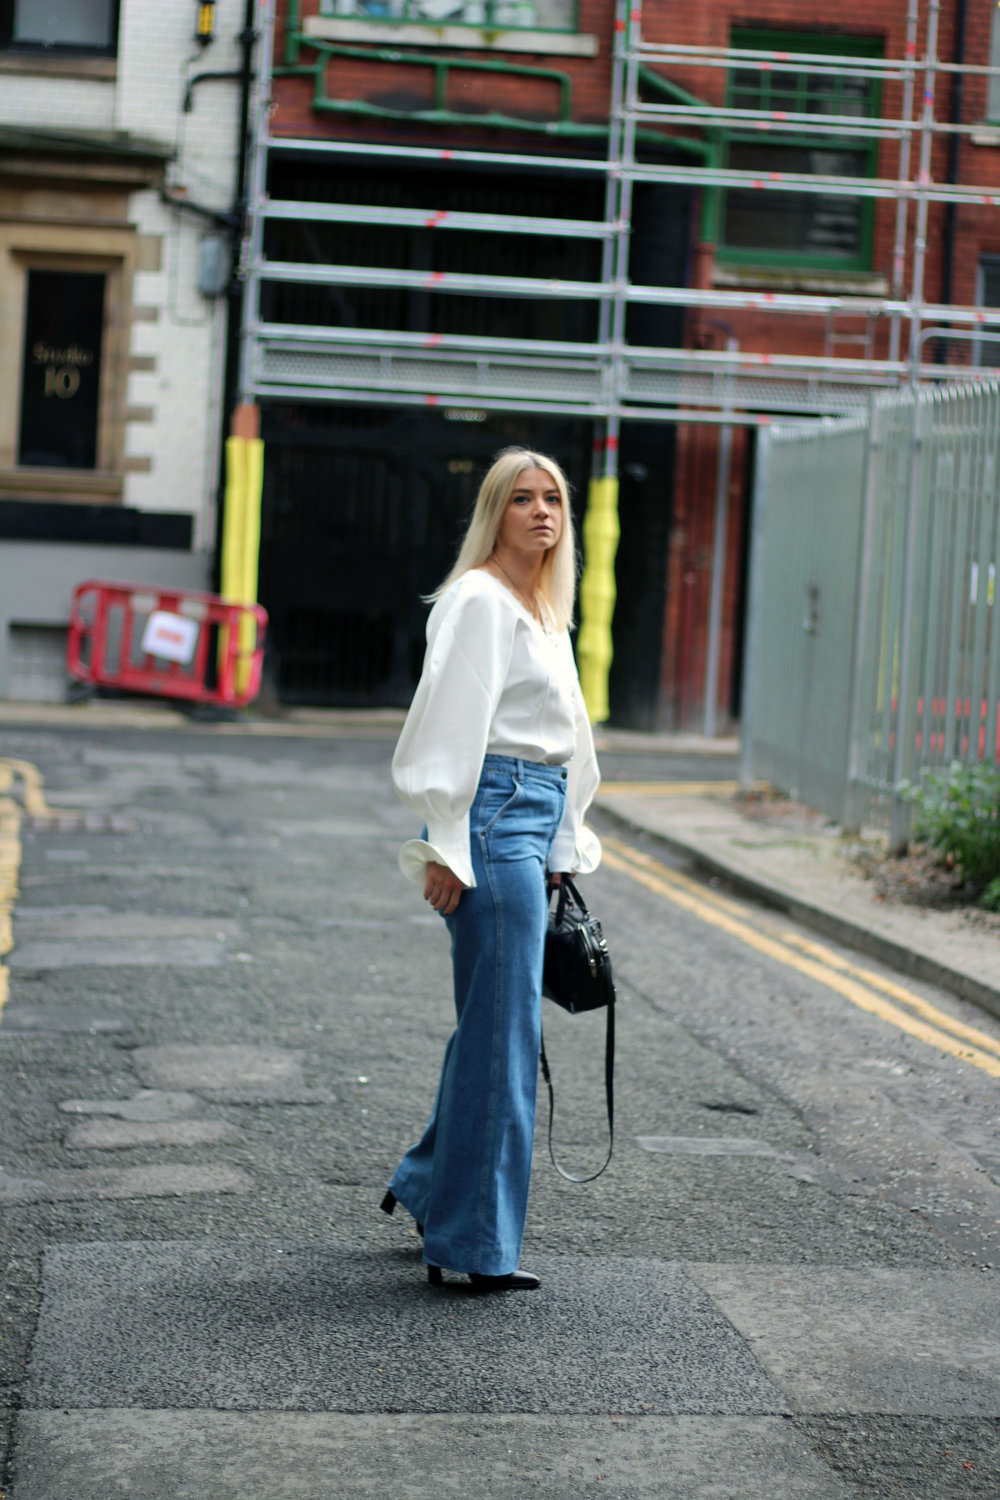 independent brands, instagram shopping, oh hey gilr, white blouse, joey taylor, northern magpie 7